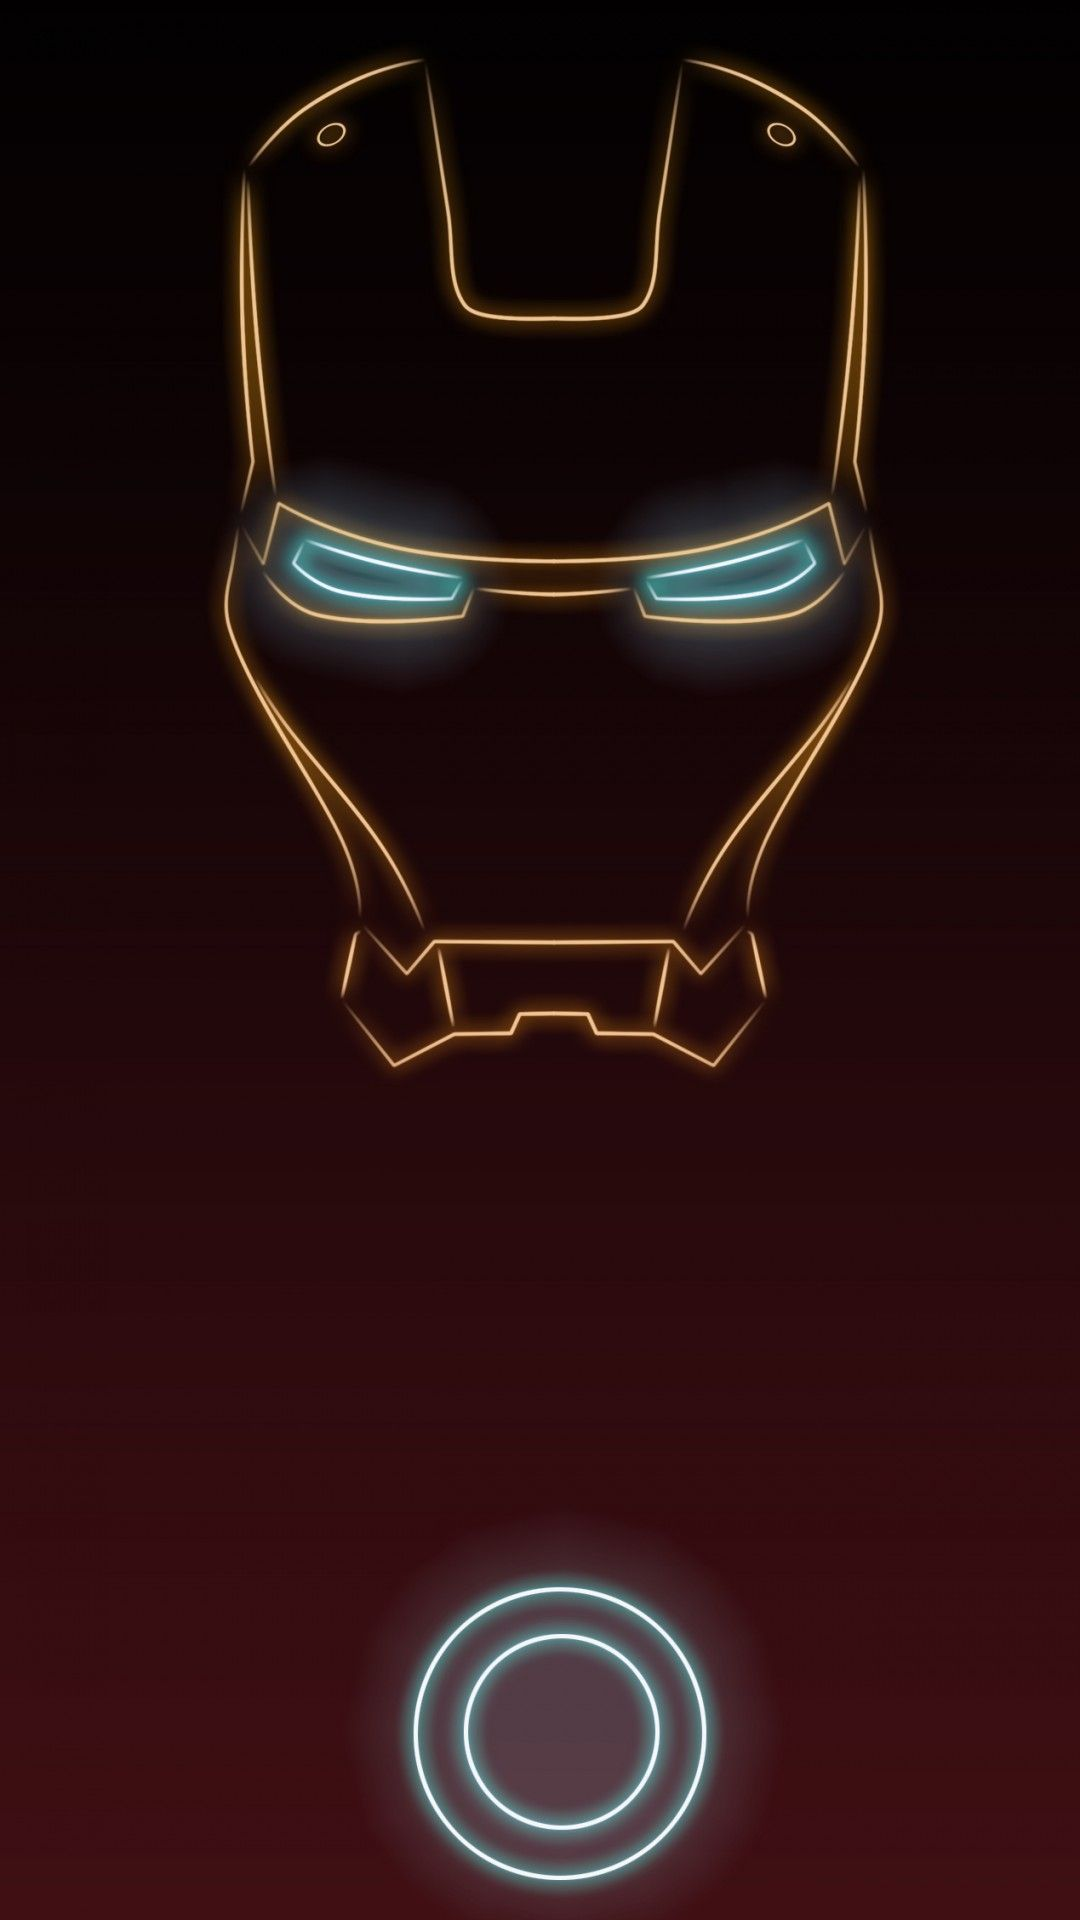 1080x1920 Iron Man Tap To See More Superheroes Glow With Neon Light Apple Iron Man Wallpaper Man Wallpaper Marvel Wallpaper Hd